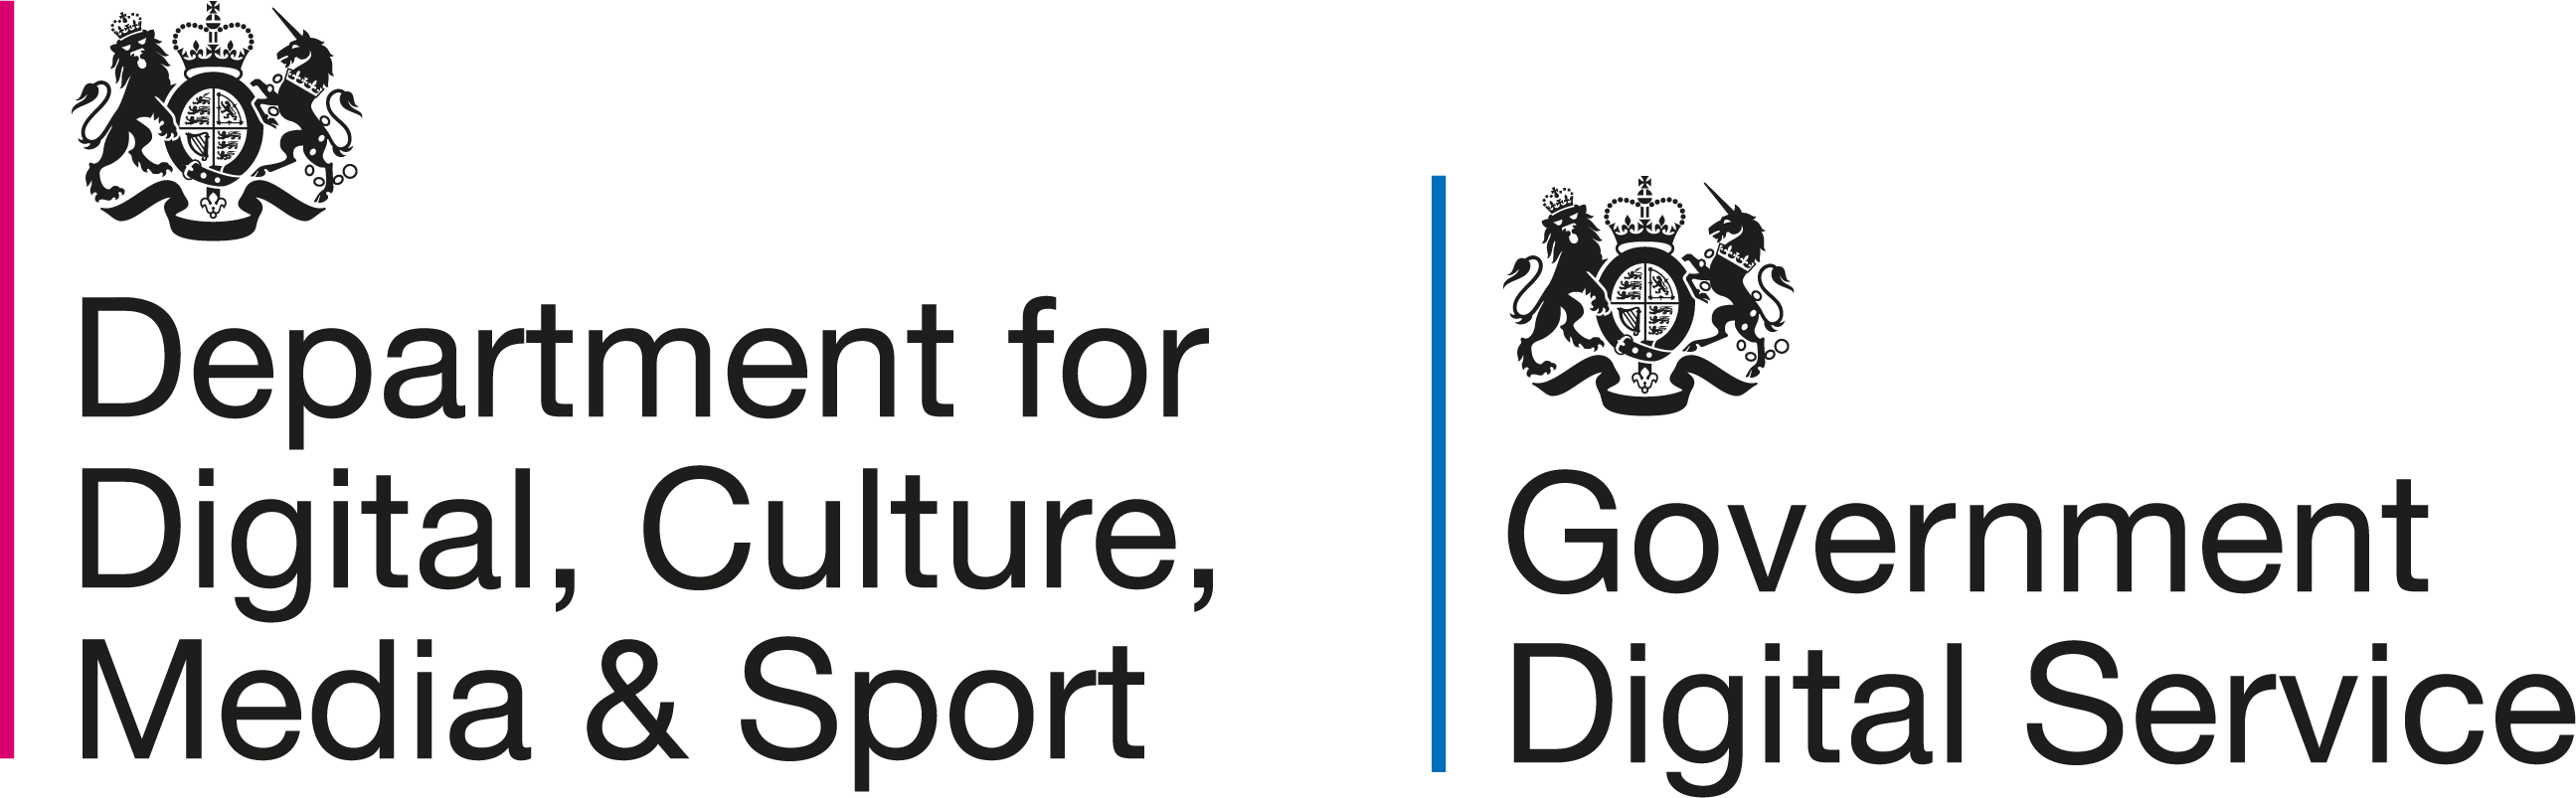 Logos of the Department for Digital, Culture, Media and Sport and the Government Digital Service